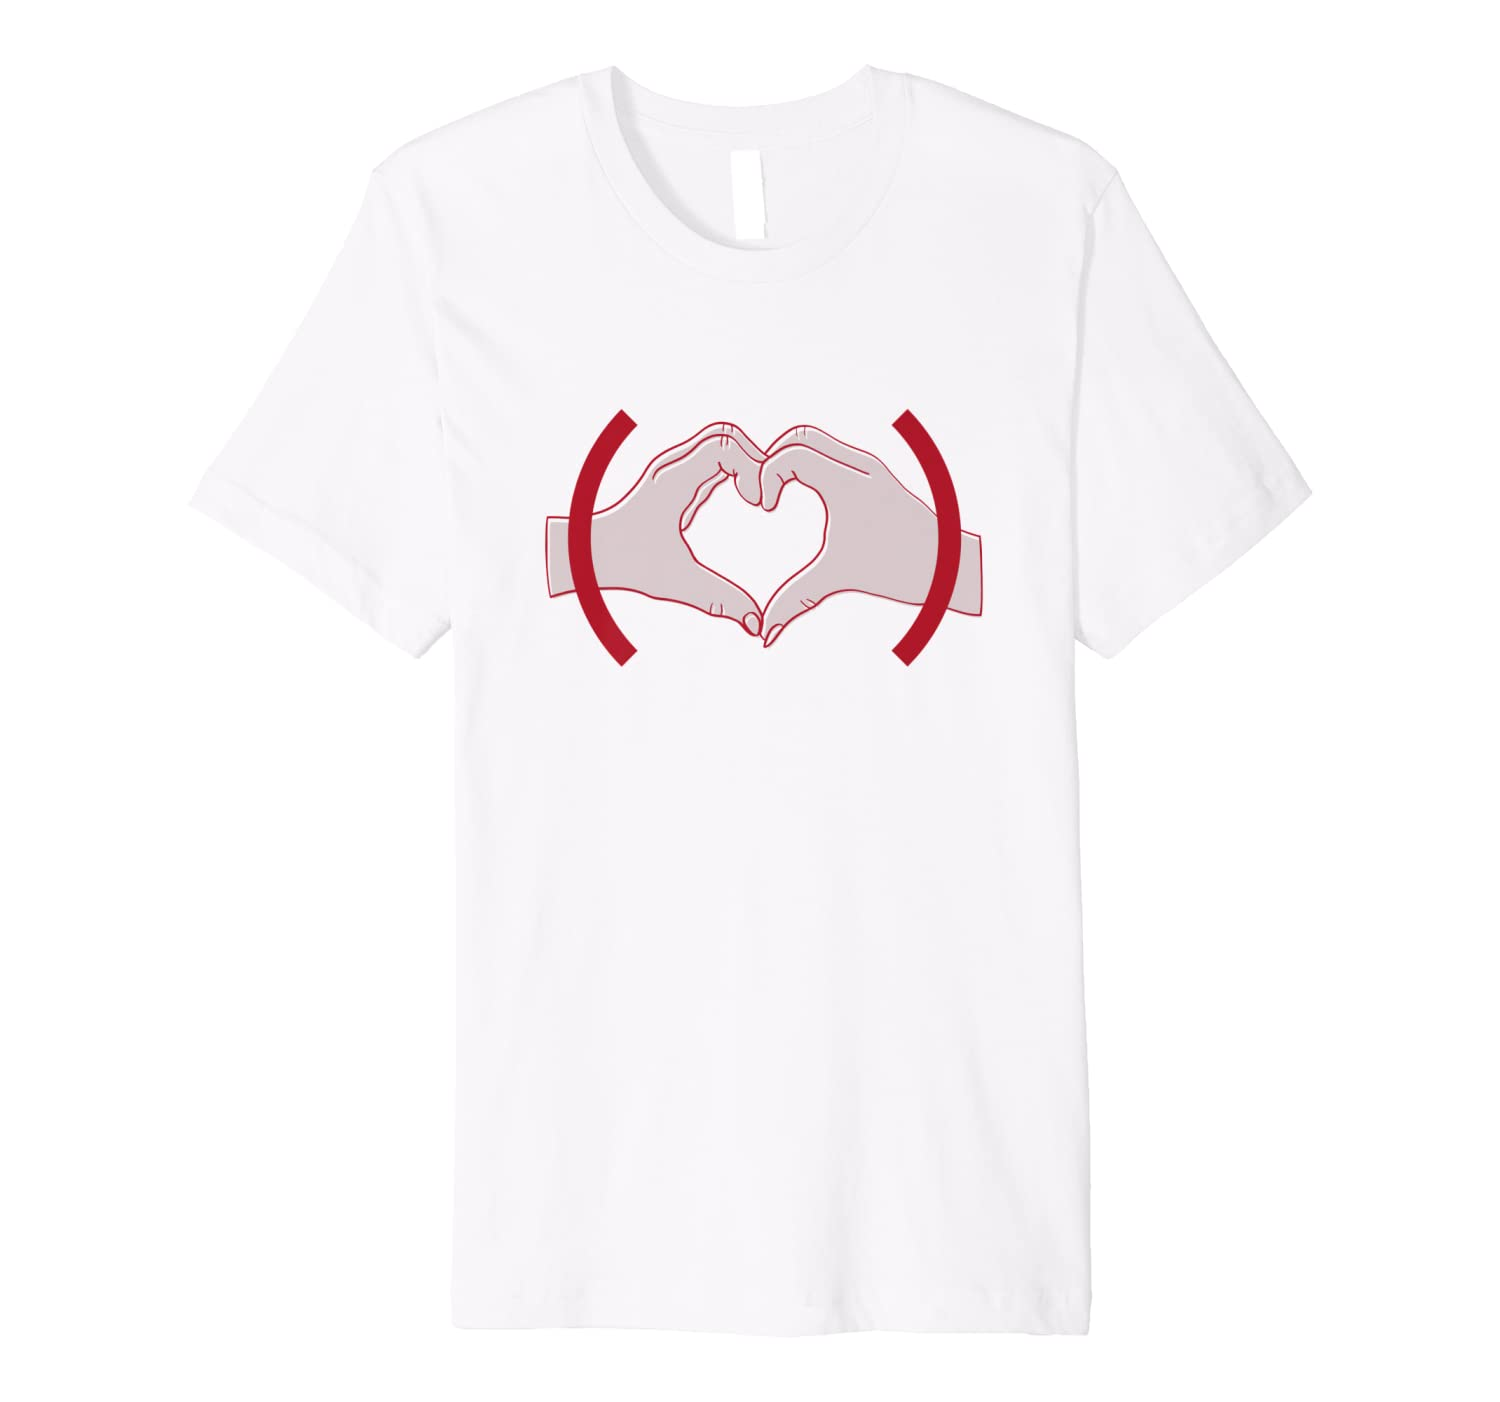 (product)red Heart Hands T-shirt